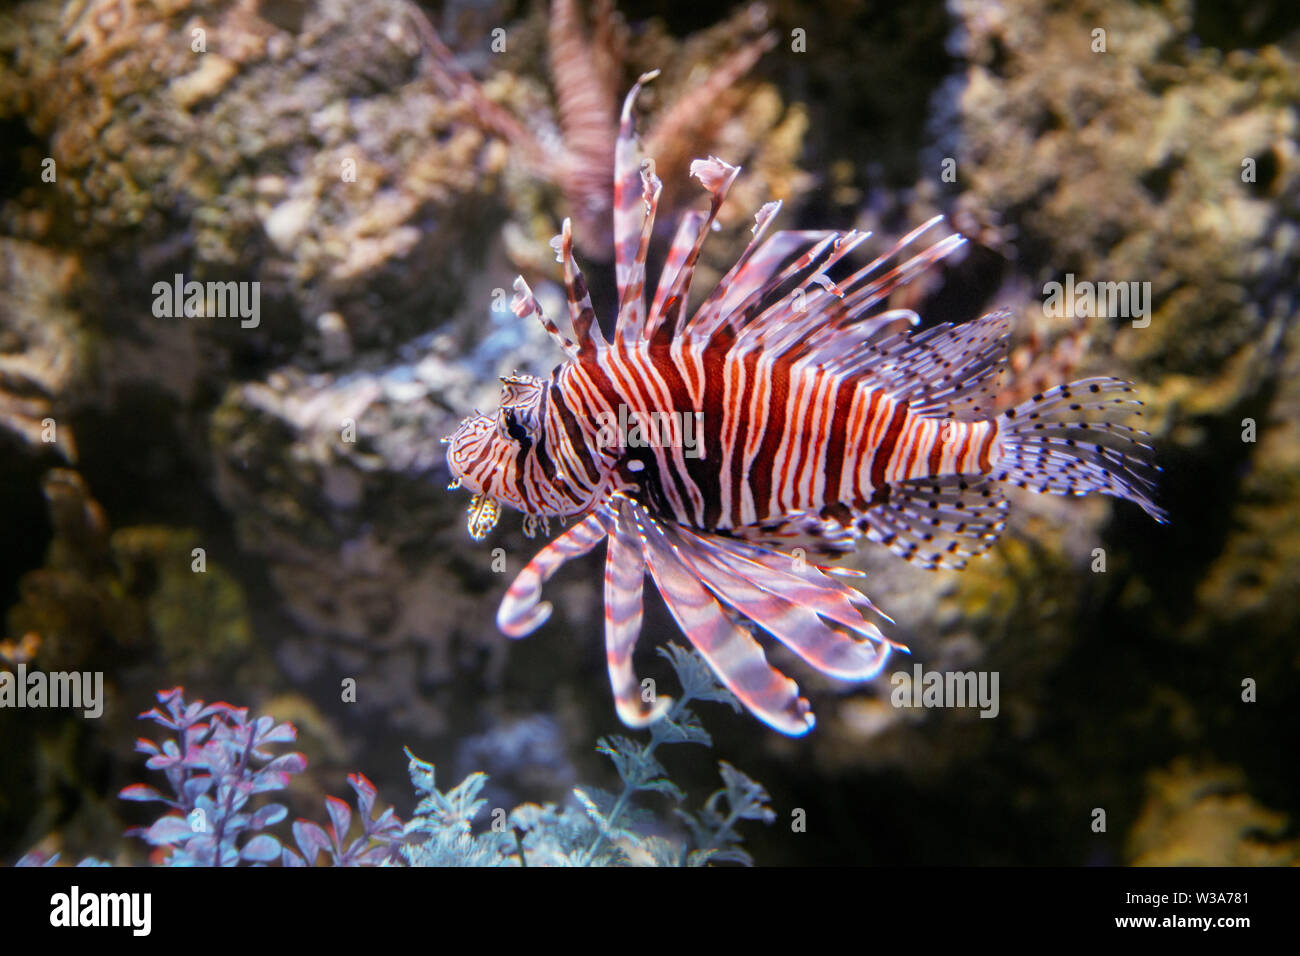 Captive Red Lionfish (Pterois volitans), a venomous coral reef fish.  Dream Aquarium at OCT Harbour. Shenzhen, Guangdong Province, China. - Stock Image